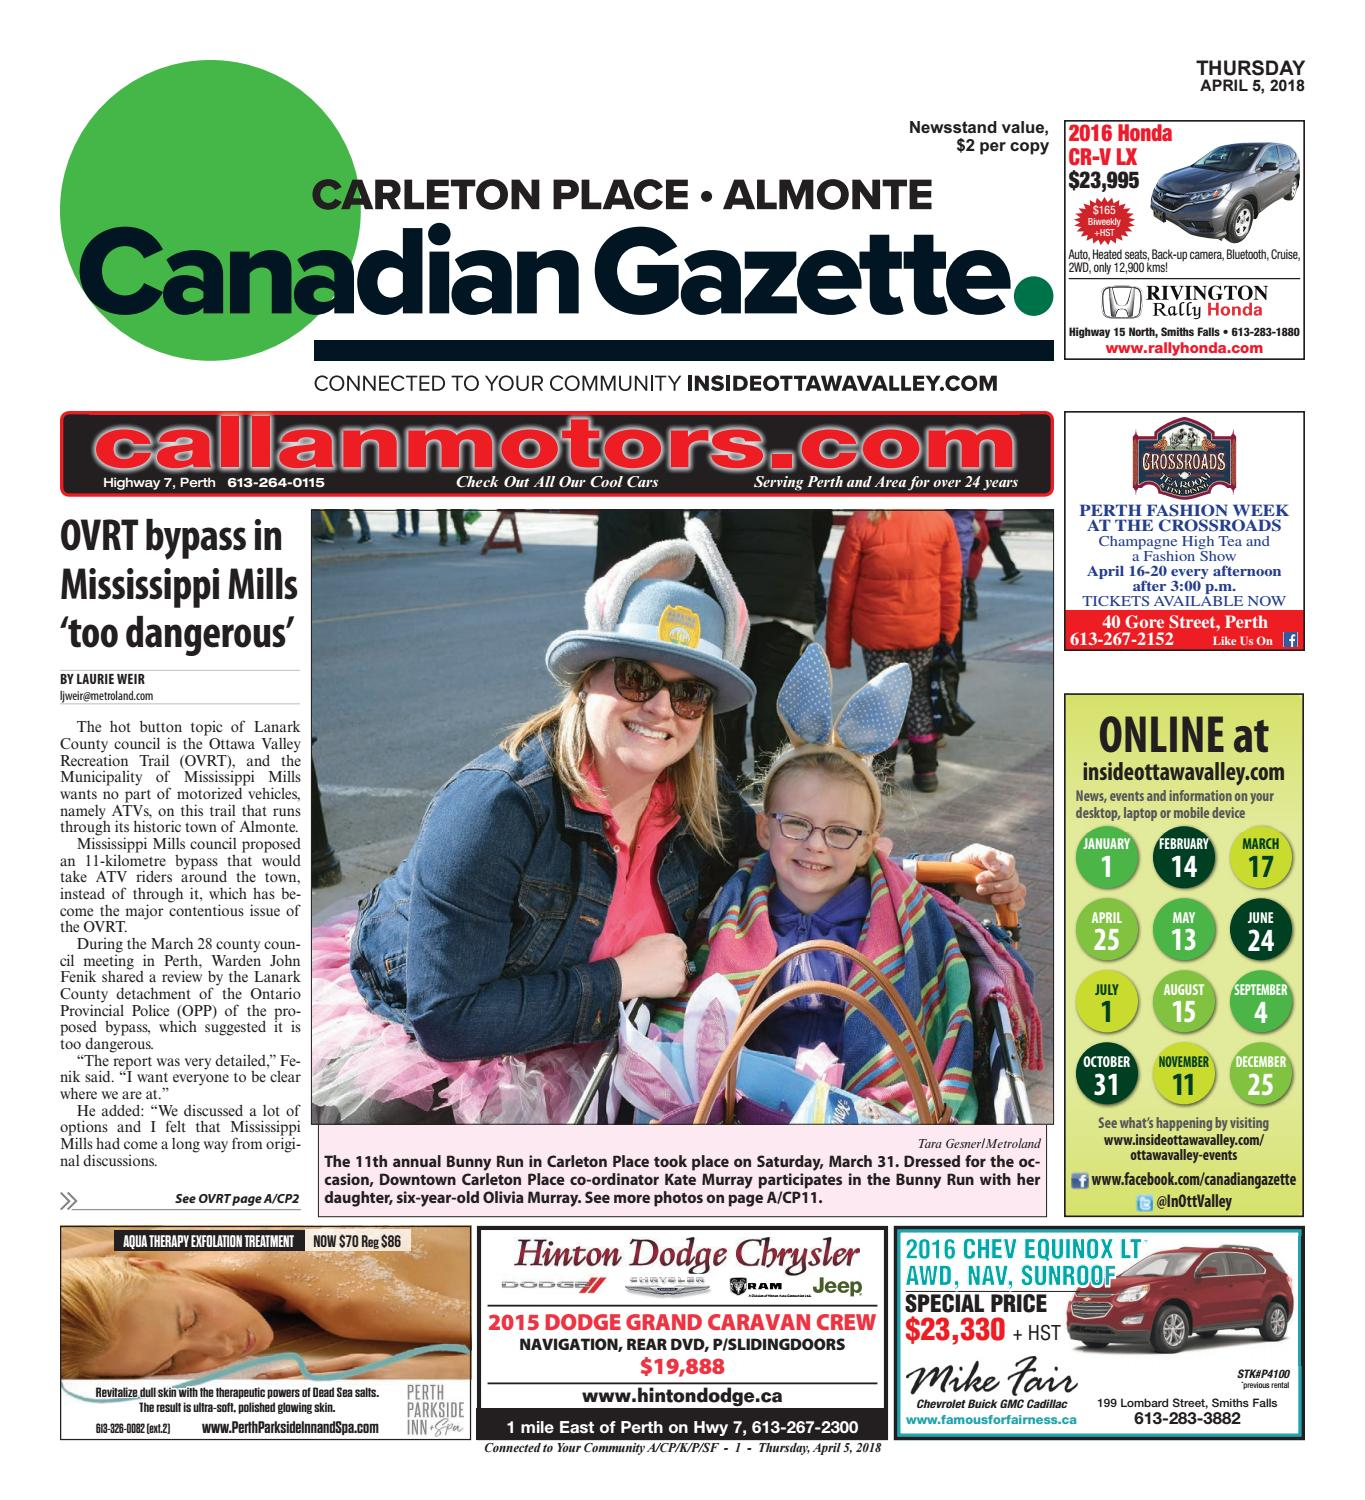 Almontecarletonplace040518 by metroland east almonte carleton almontecarletonplace040518 by metroland east almonte carleton place canadian gazette issuu fandeluxe Choice Image